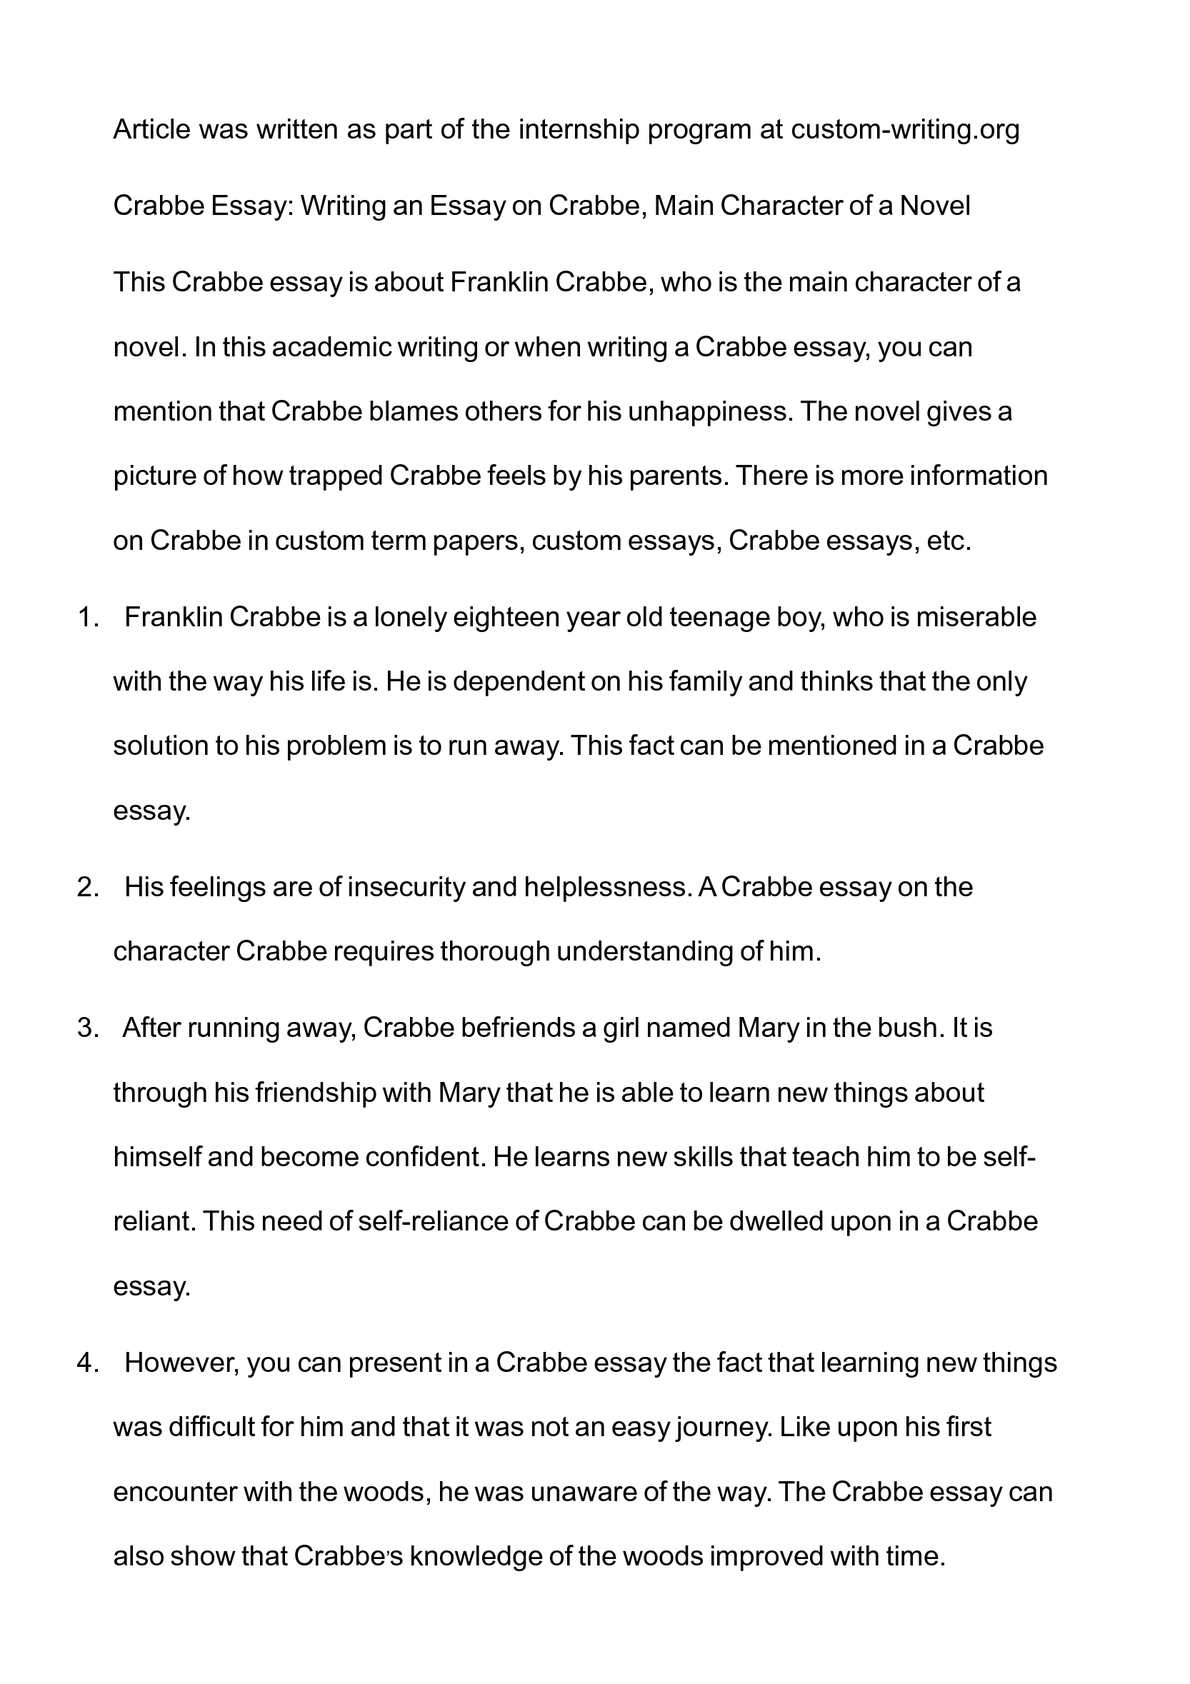 calam atilde copy o crabbe essay writing an essay on crabbe main character calamatildecopyo crabbe essay writing an essay on crabbe main character of a novel